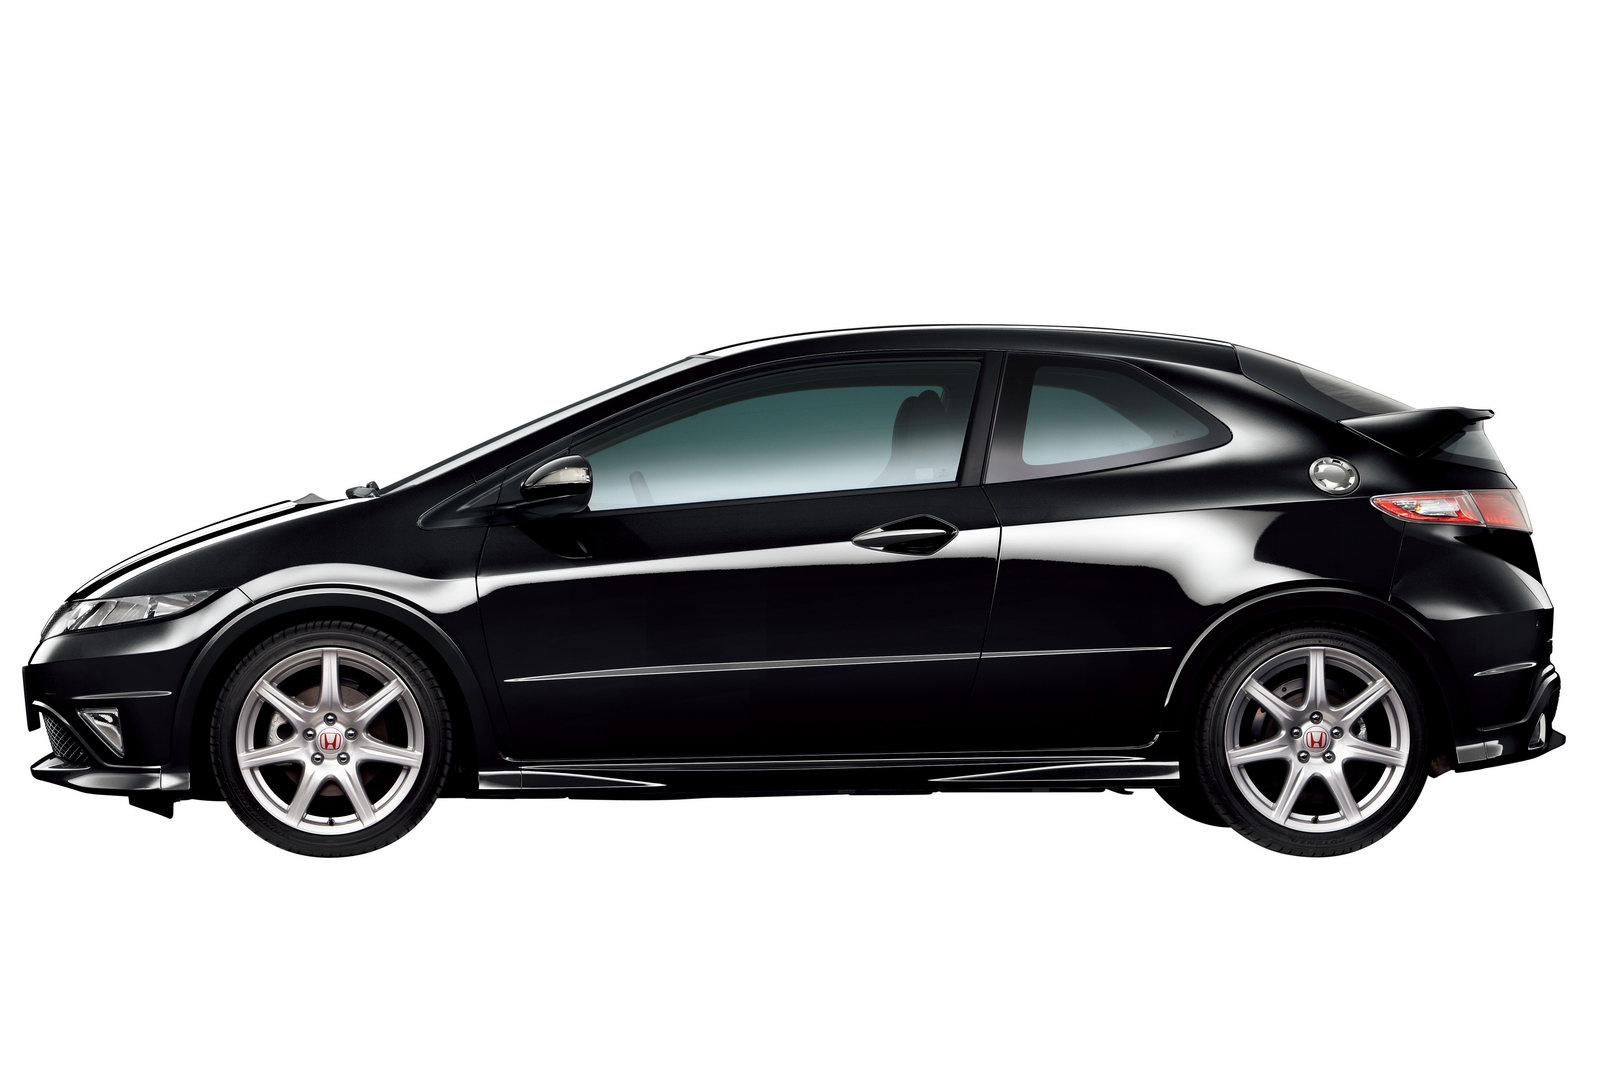 used new cars honda civic type r 2011 pictures and wallpapers. Black Bedroom Furniture Sets. Home Design Ideas